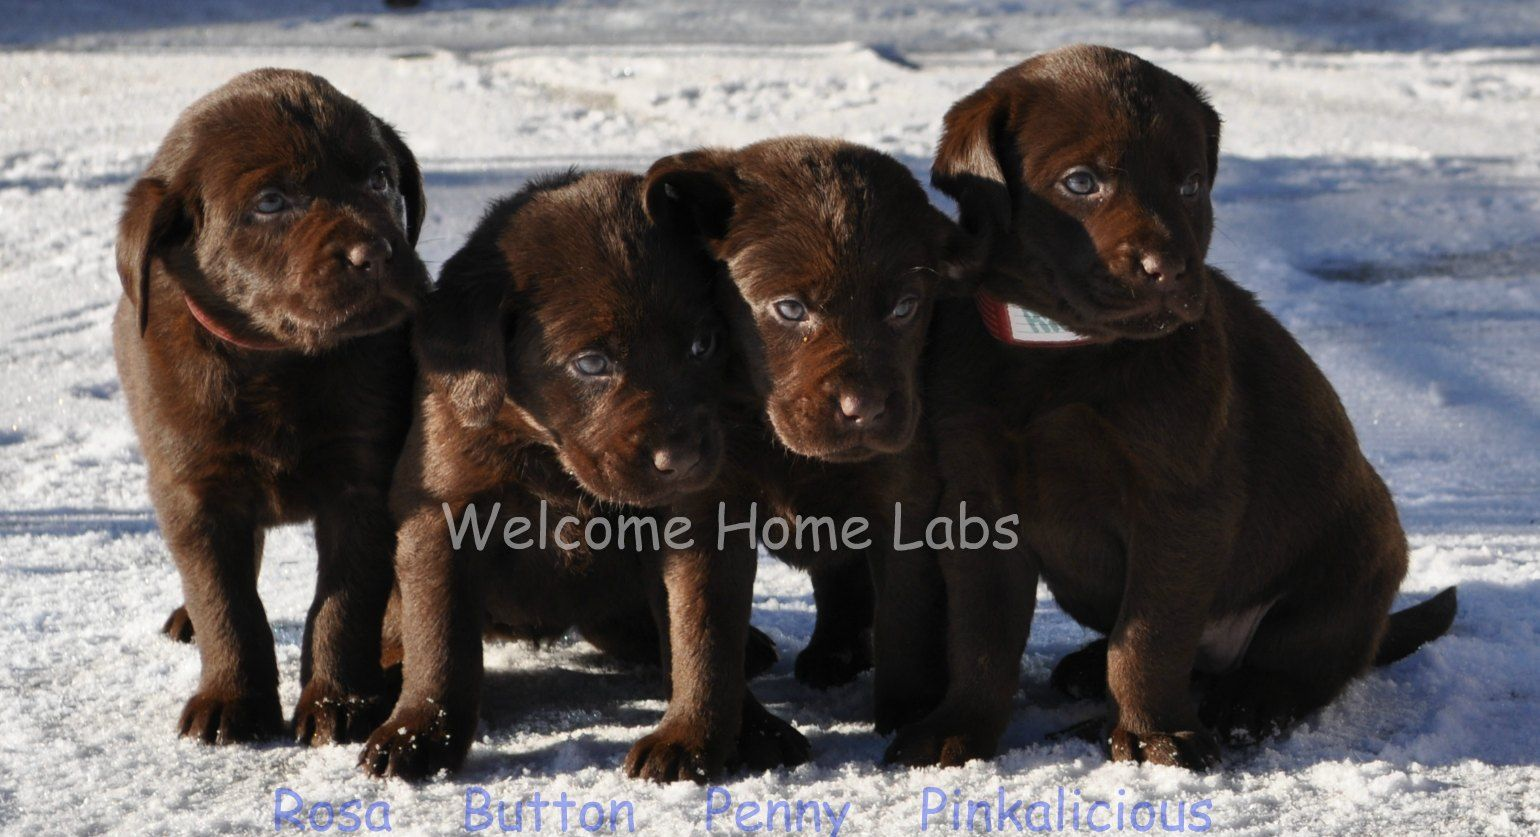 Labrador Puppies For Sale Mn Yellow Lab Puppies Minnesota Welcome Home Labs Located In Minnesota Yellow Lab Puppies Lab Puppies Labrador Puppies For Sale